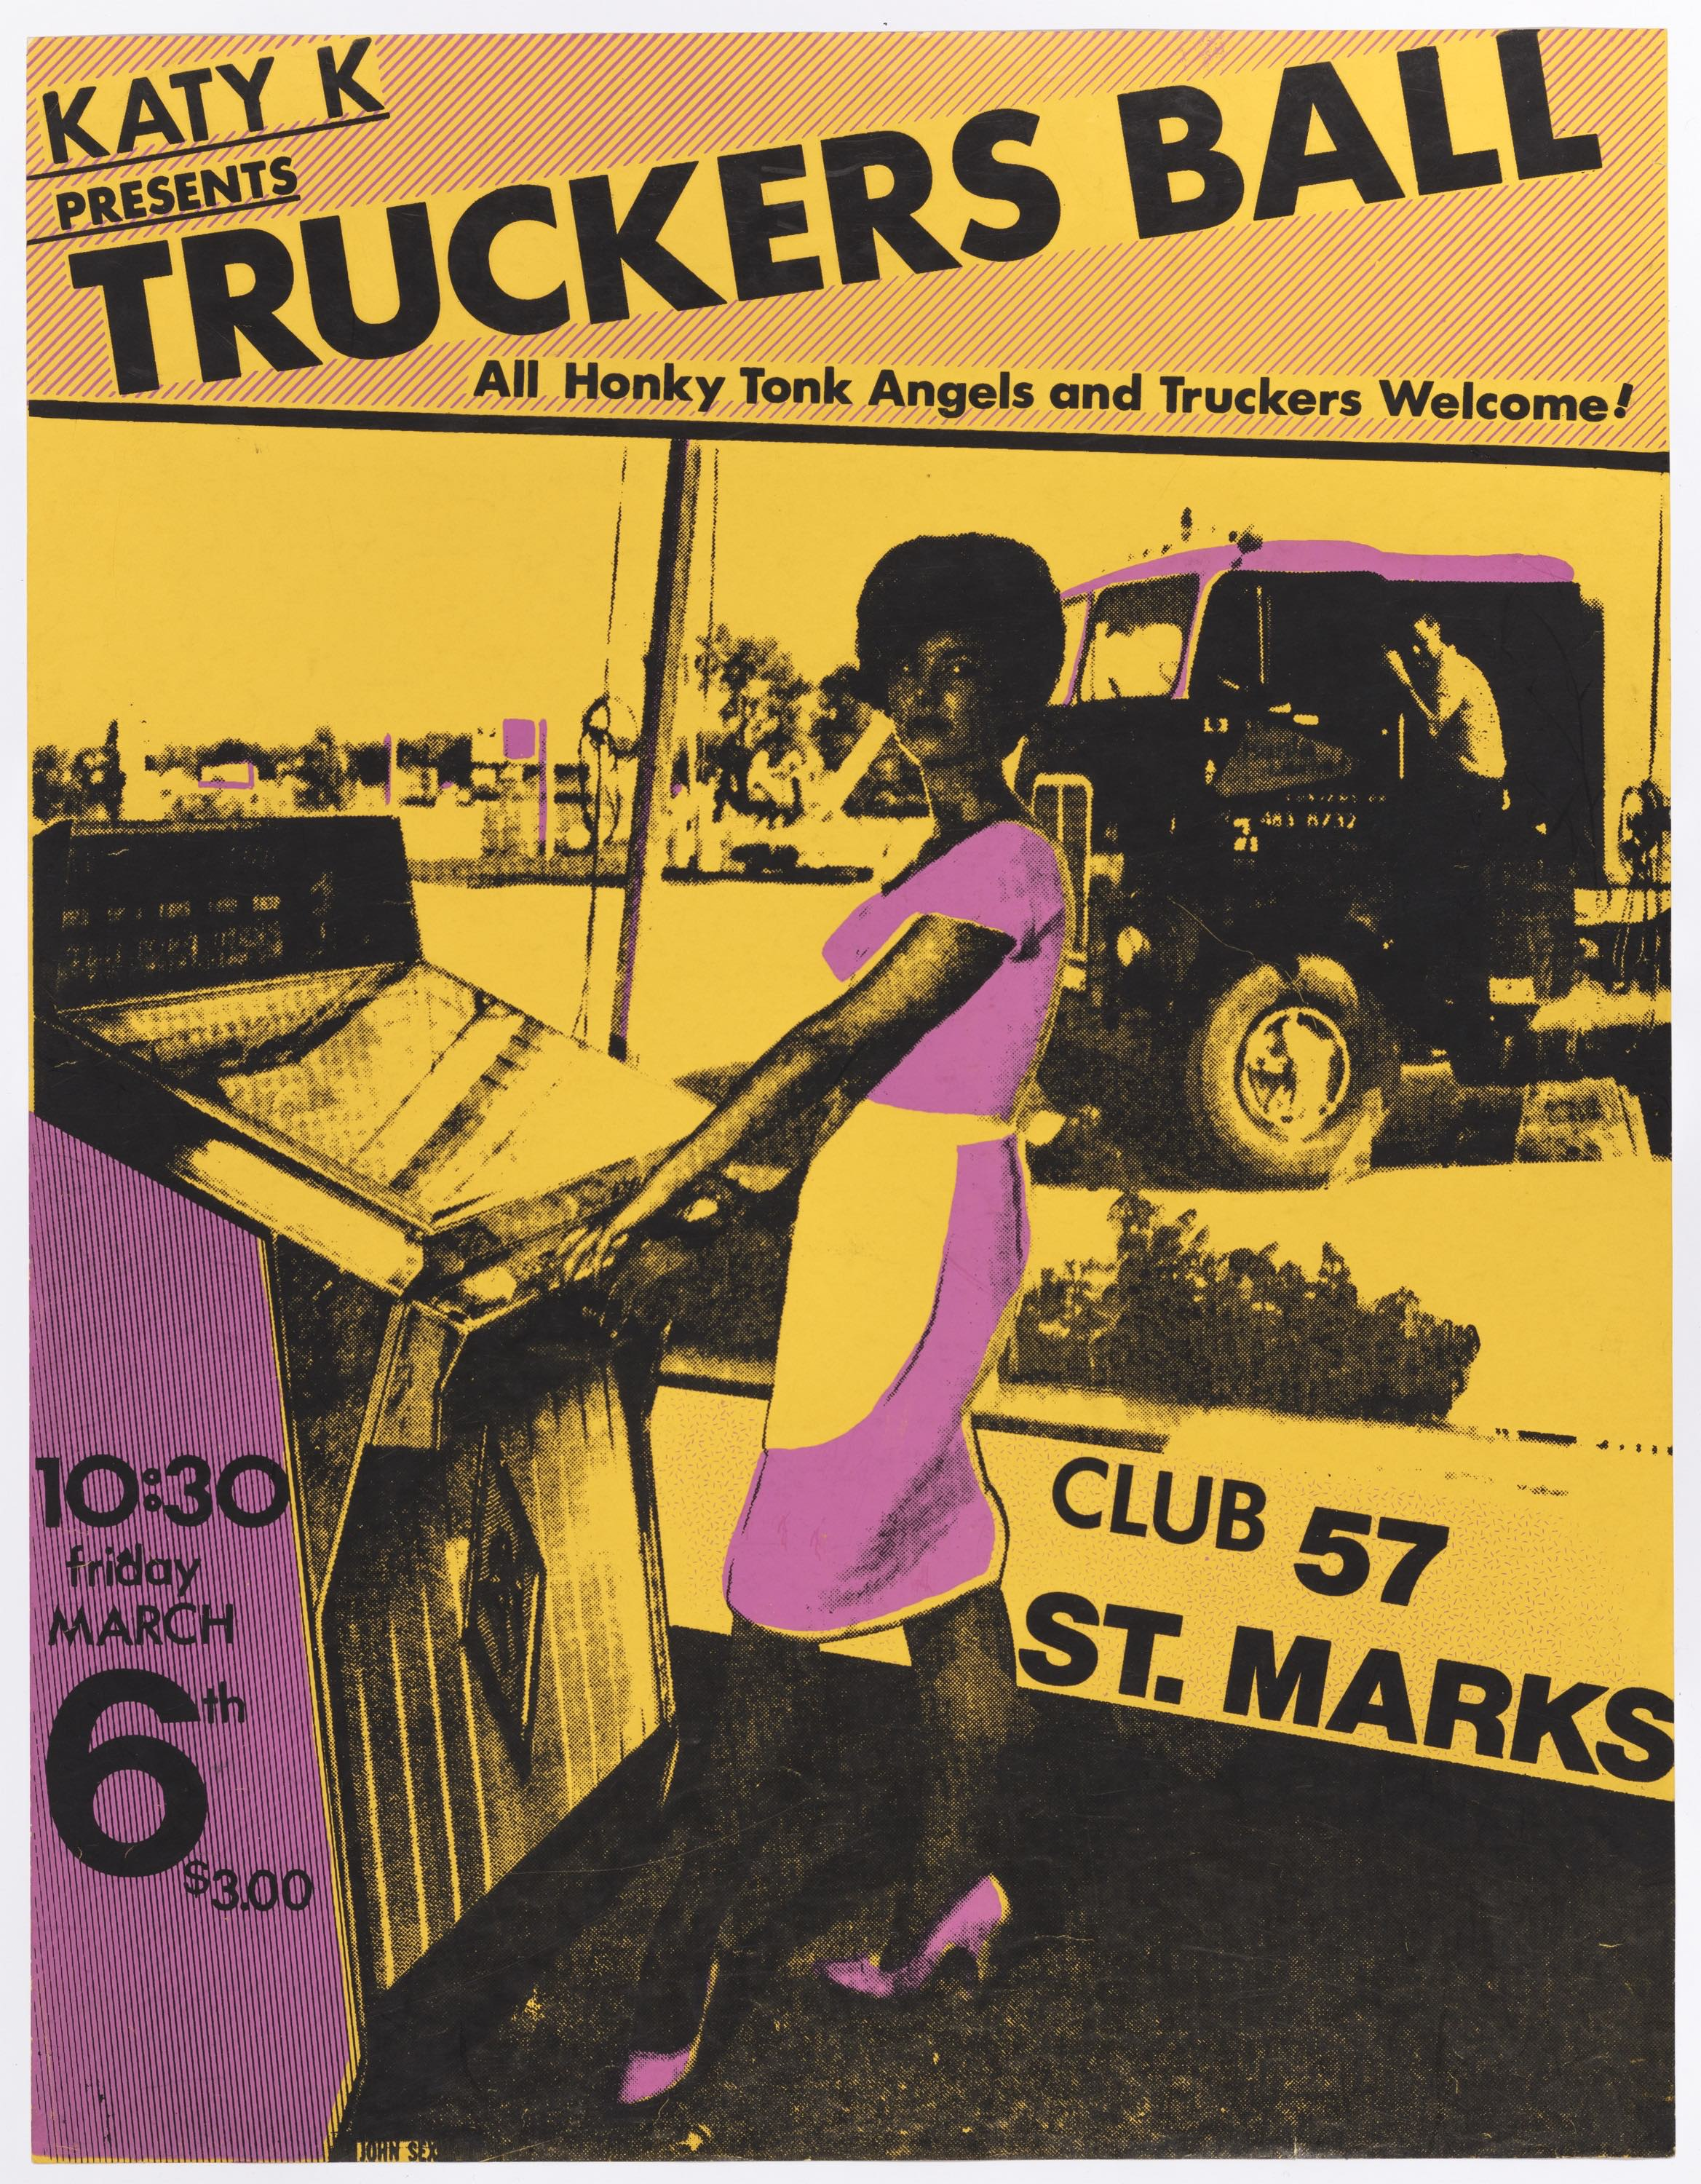 John Sex (American, 1956–1990). Truckers Ball, 1981. Silkscreen. The Museum of Modern Art, New York. Department of Film Special Collections